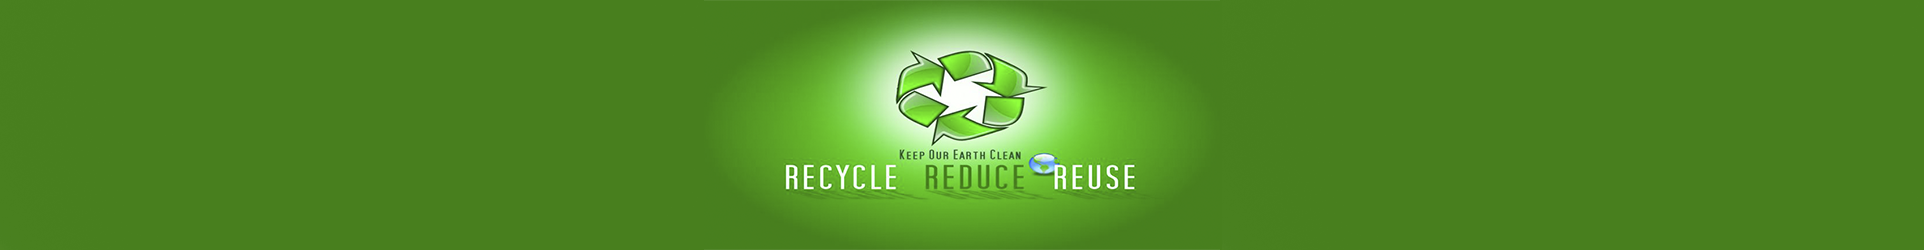 keep our earth clean. Recycle. Reduce. Reuse.